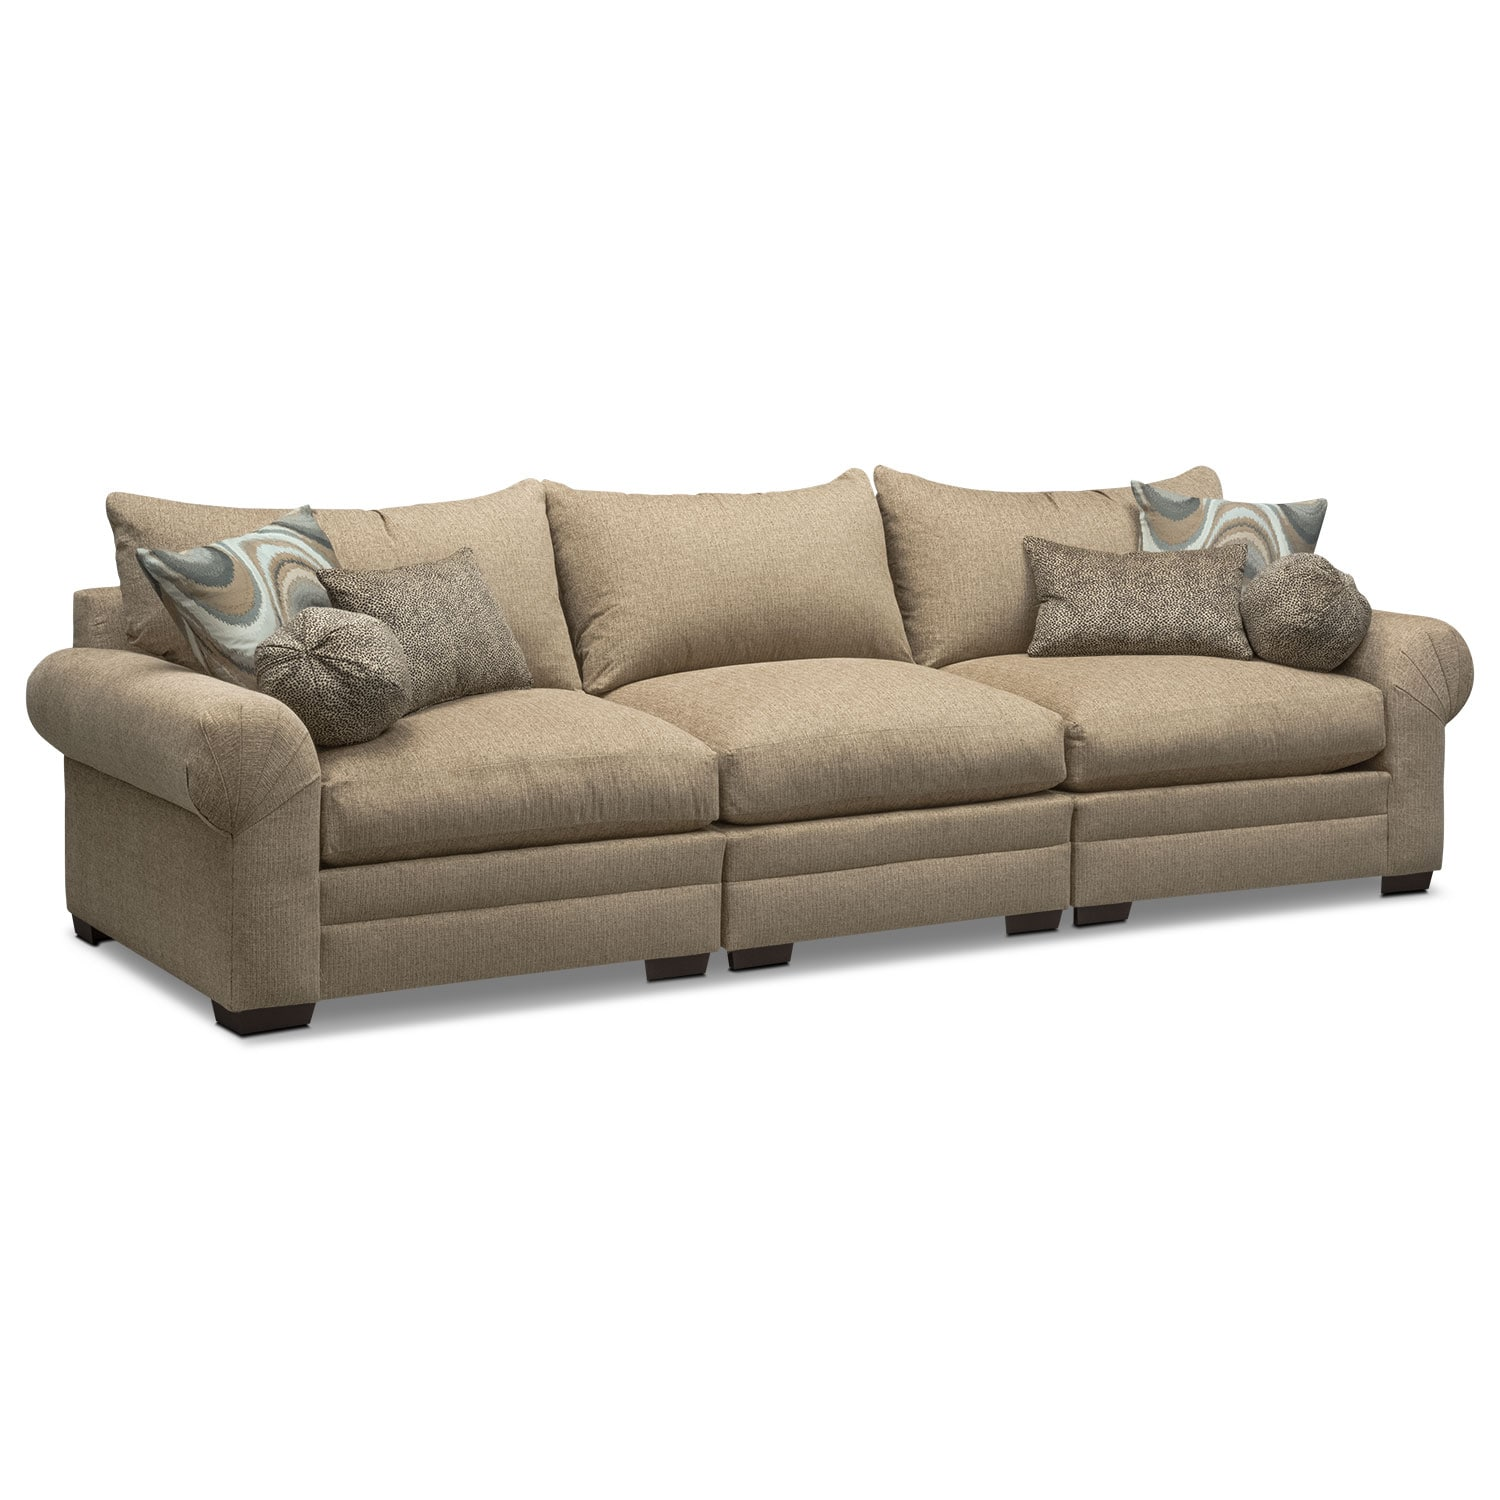 Wilshire 3-Piece Sectional - Taupe